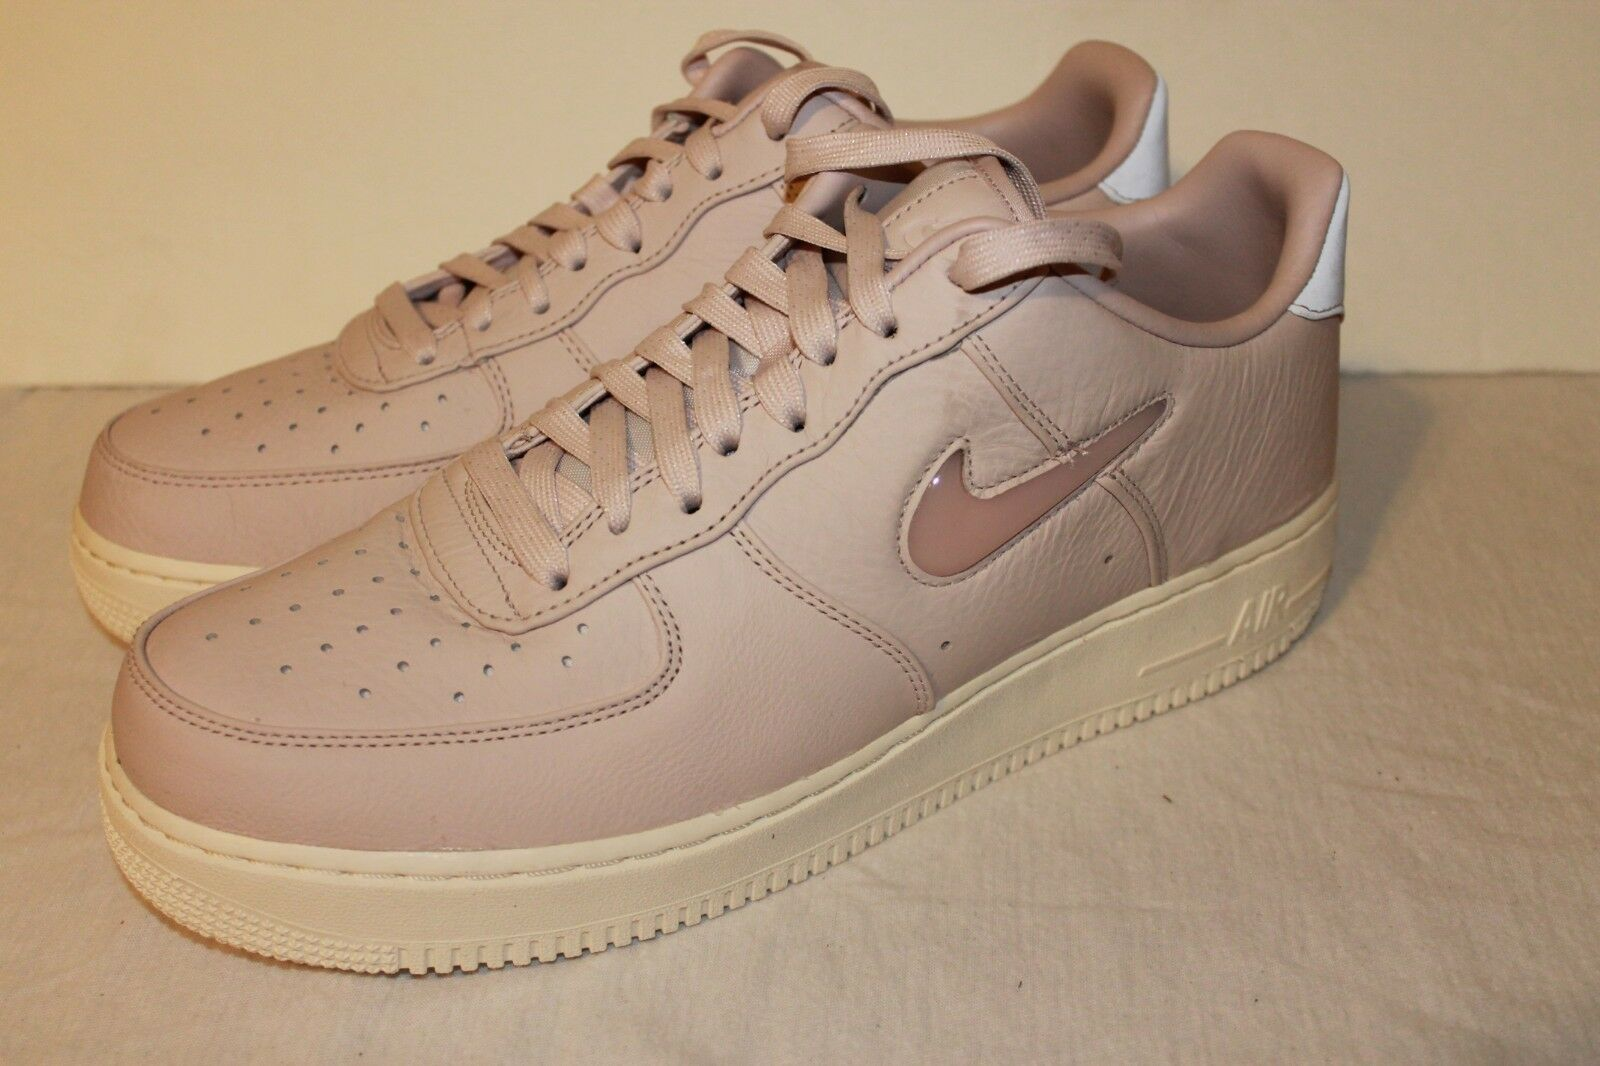 Nike Air Force 1 Low Retro PRM Jewel Pack 941912-600 Lab NSW Classic AF1 size 11